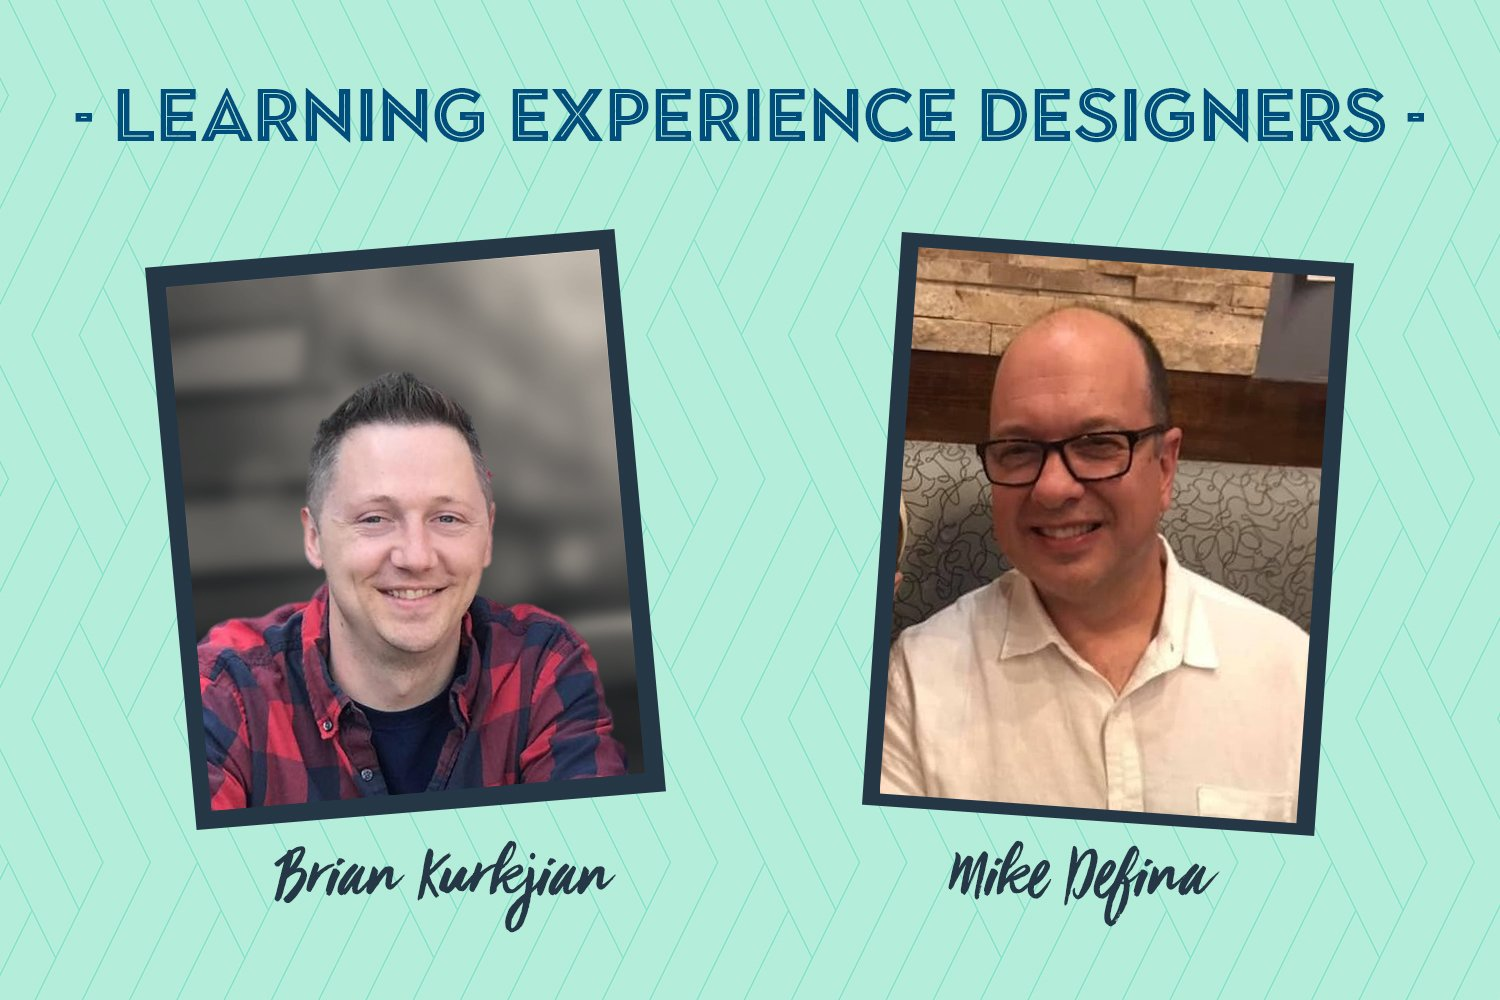 BBC Training team expands with learning experience designers